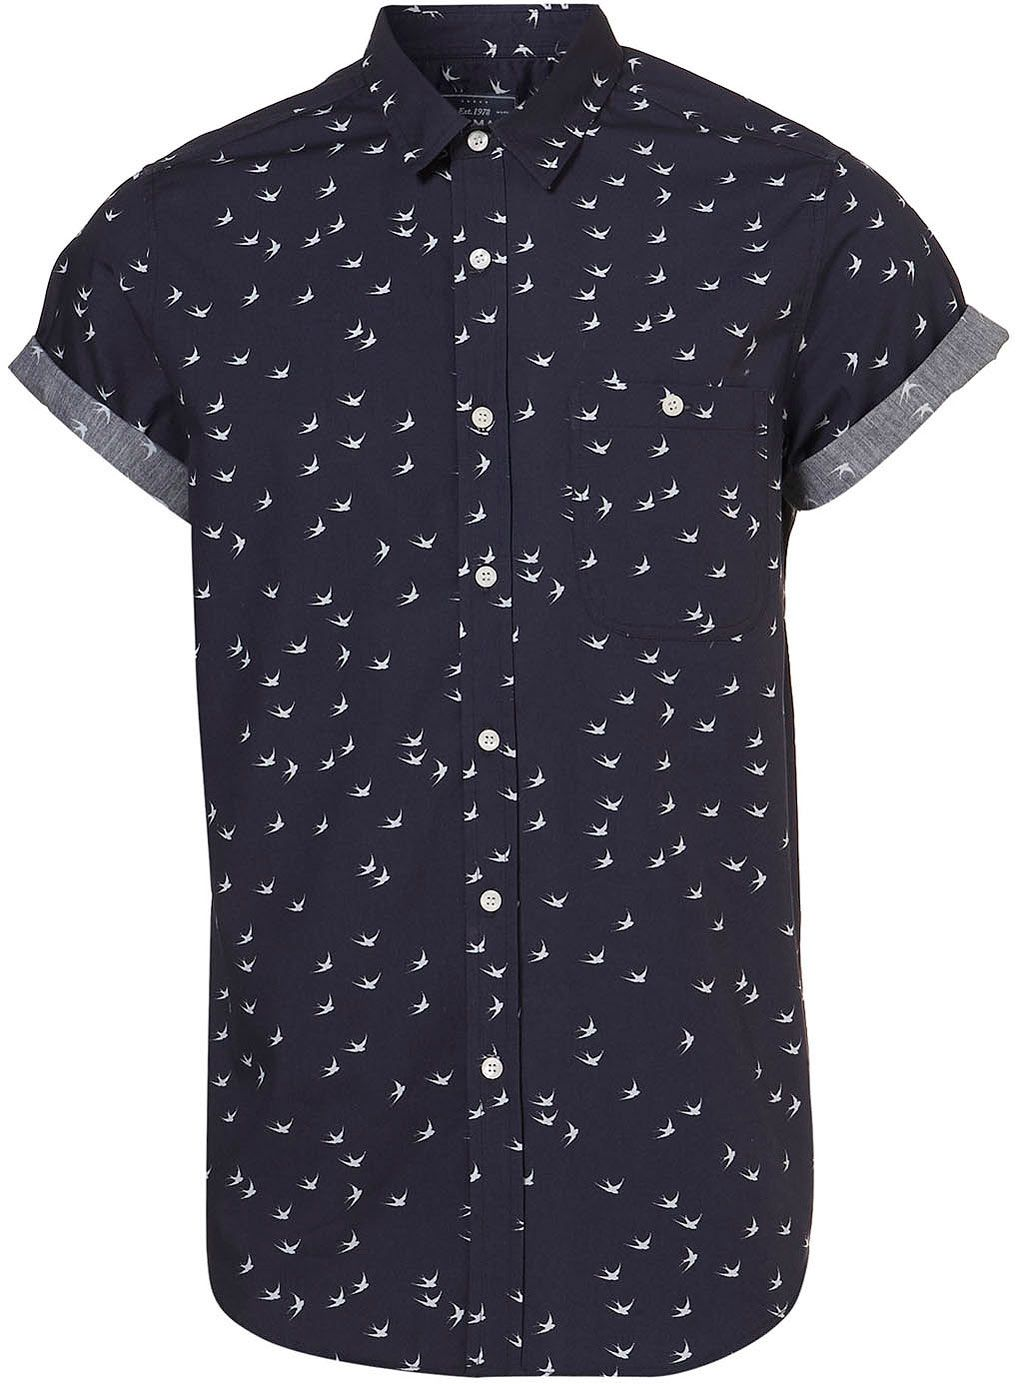 f2a58460 Navy Swallow Print Short Sleeve Shirt - Sale Shirts - Sale & Offers - Sale  & Special Offers - TOPMAN